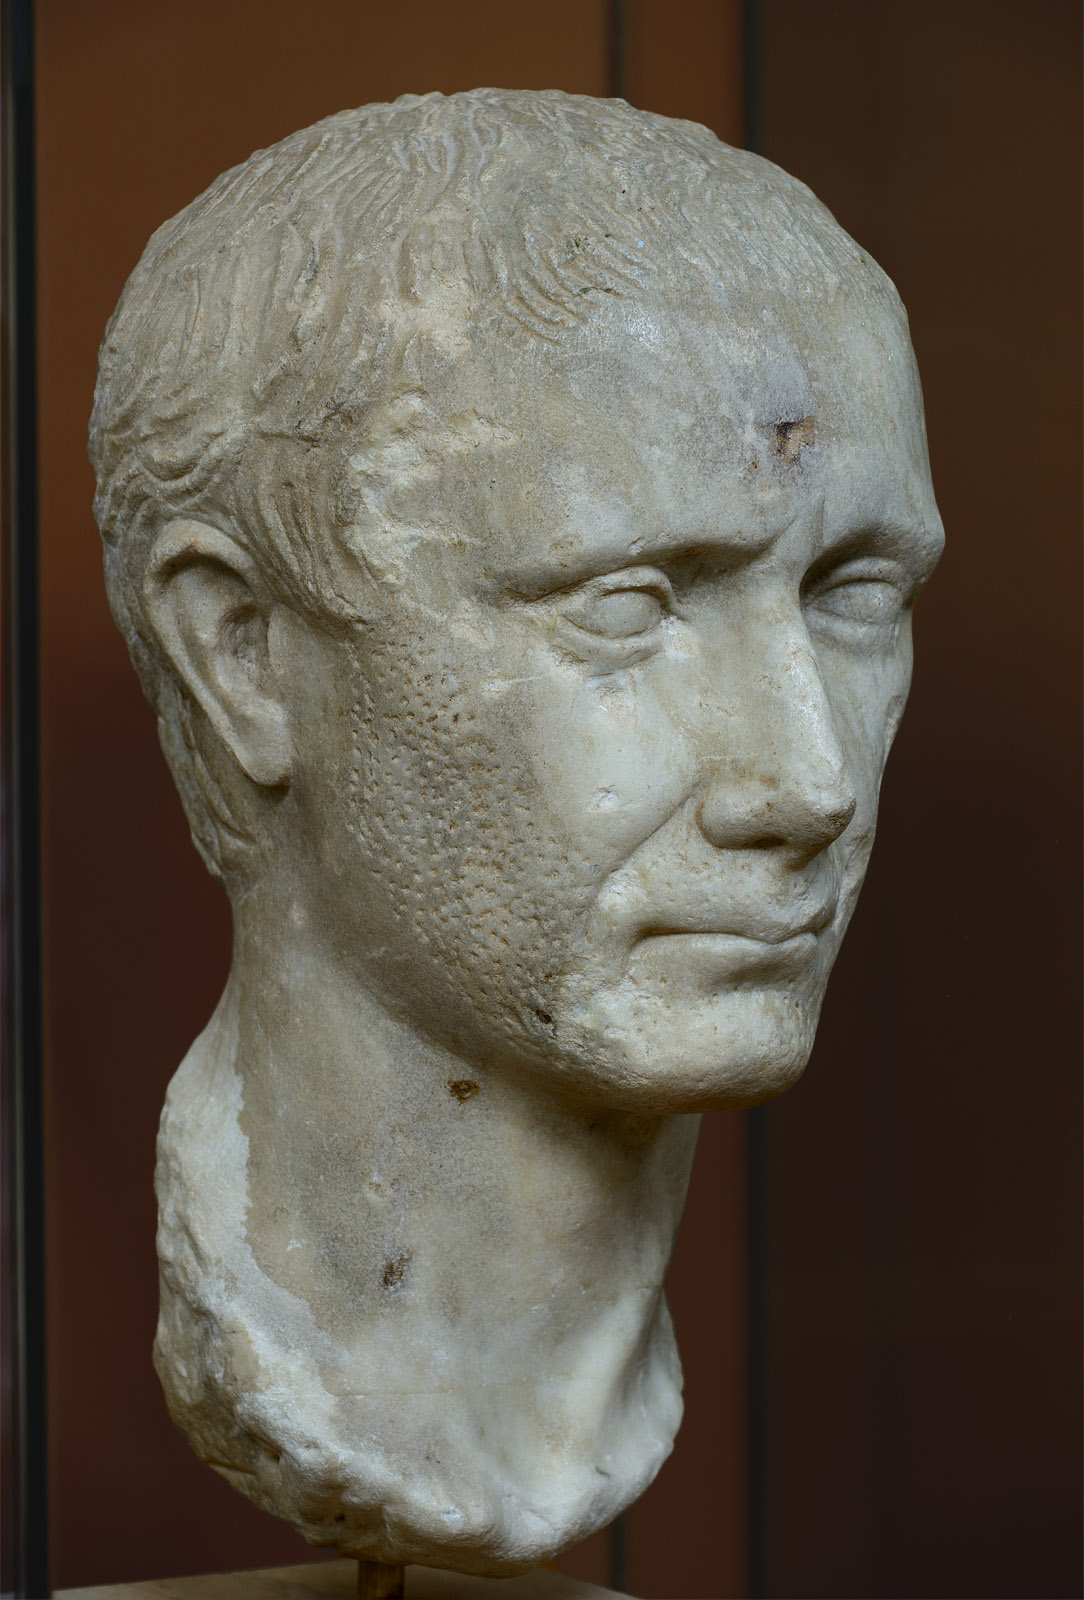 Gaius Julius Caesar (?). Marble. First quarter of the 1st century CE. Inv. No. S 2771. Corinth, Archaeological Museum of Ancient Corinth